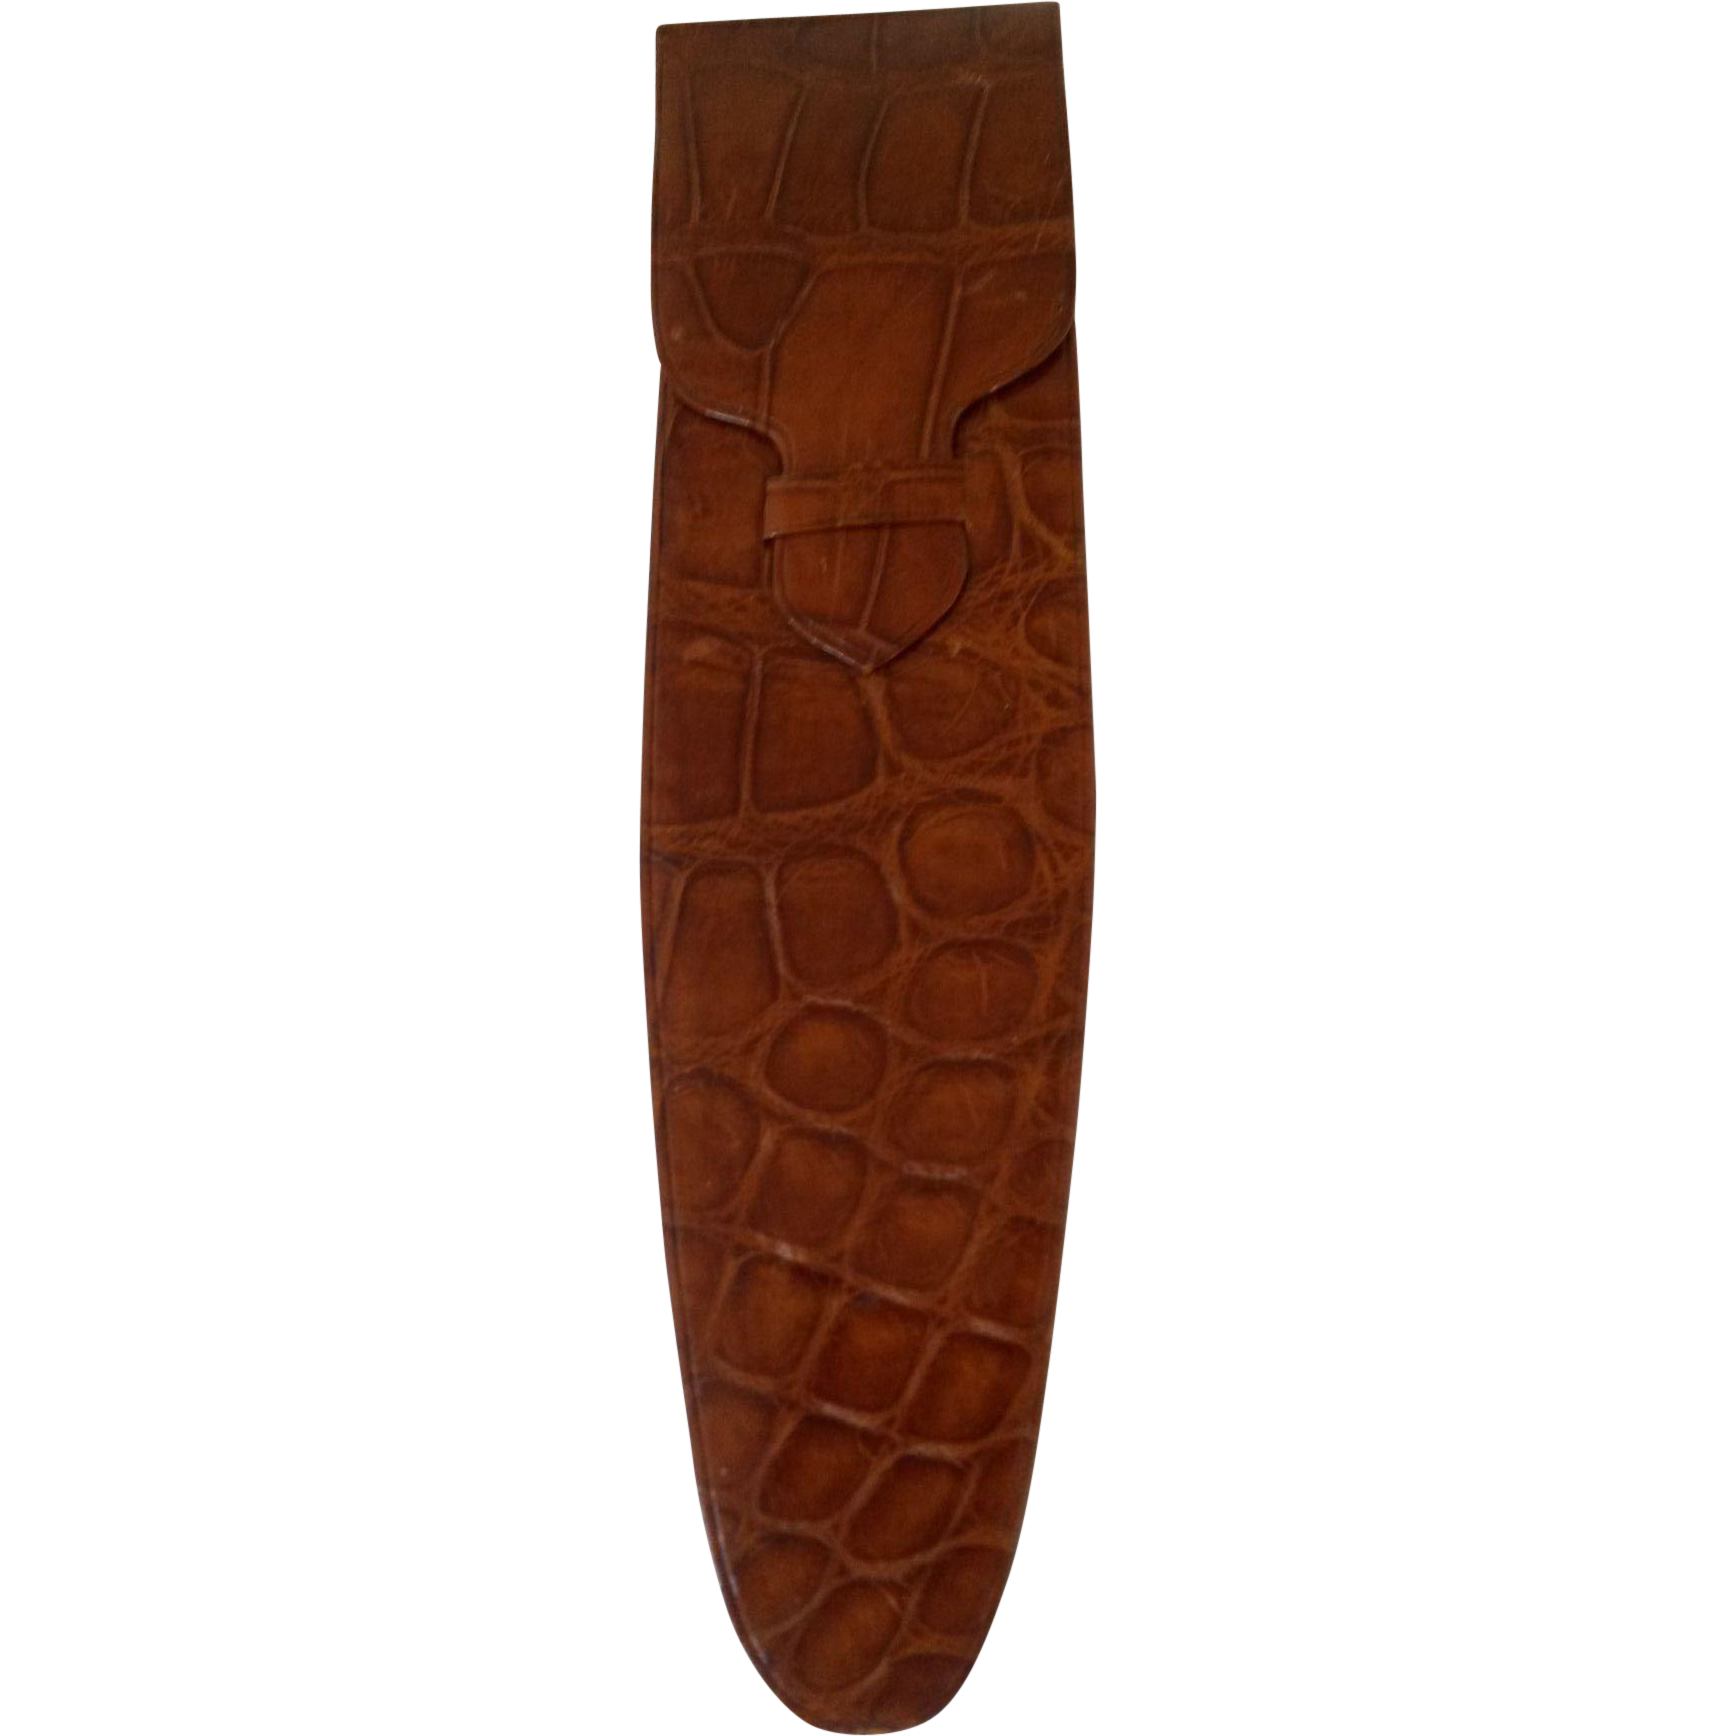 Asprey of London Crocodile pen/spectacles case